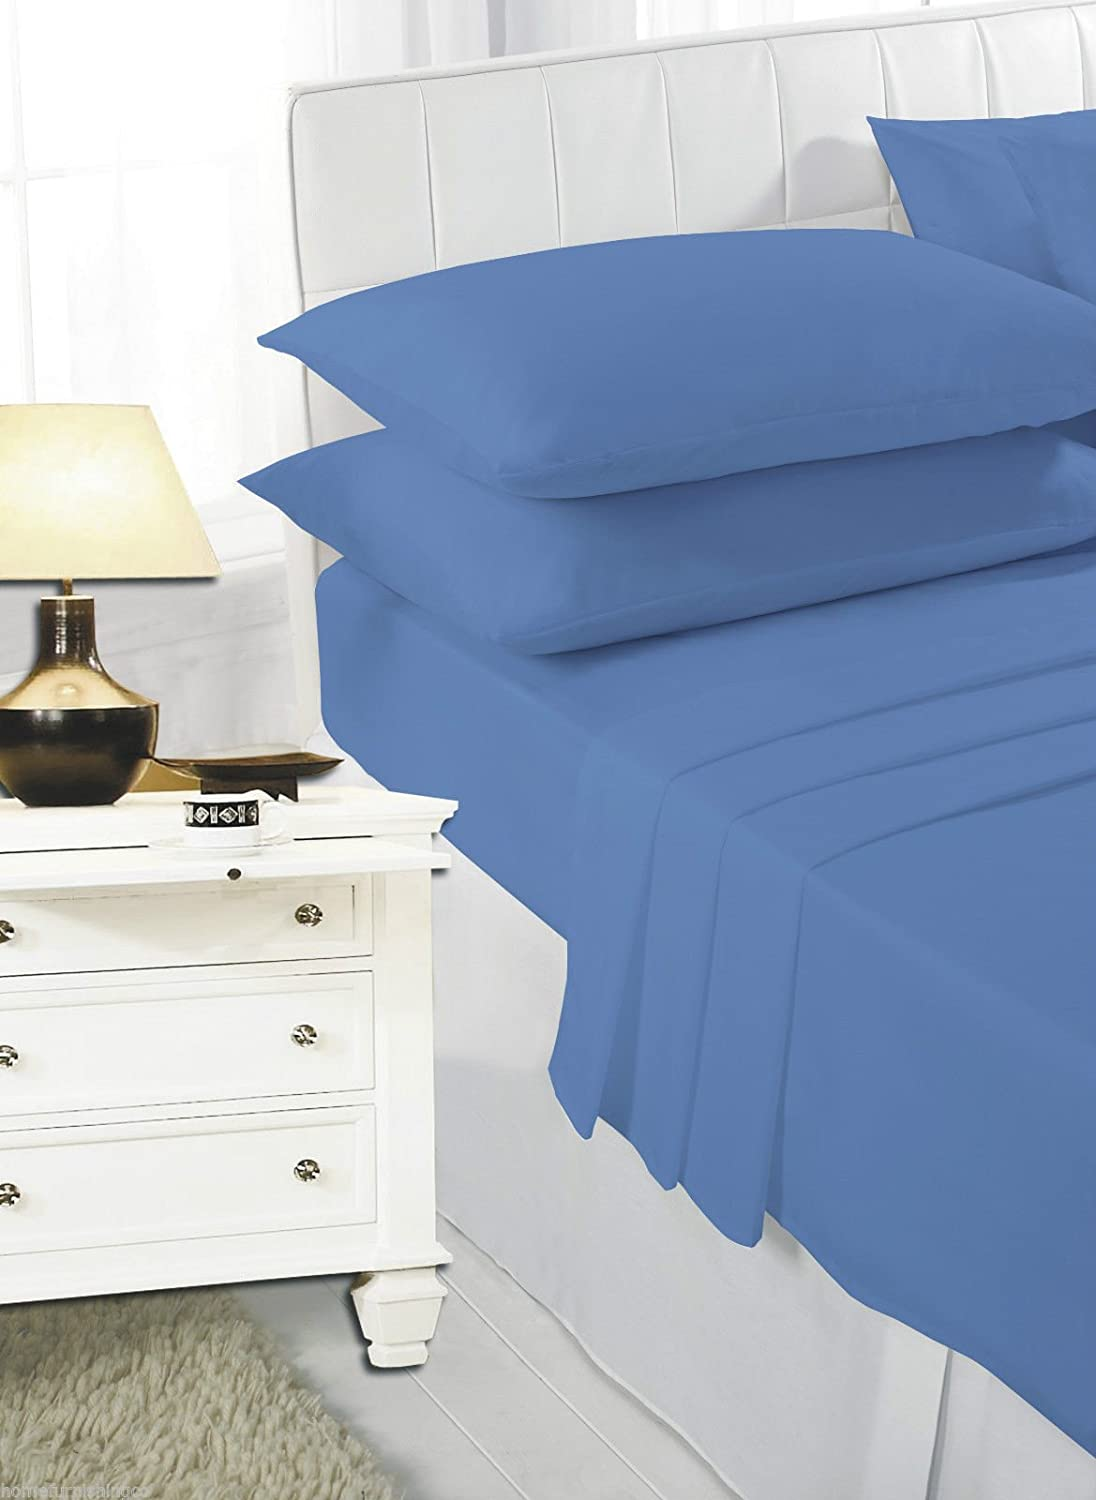 4ft Fitted Sheets Polycotton Bed Sheets 4ft Size Bed Deep Poly Cotton Bedding, Black De Lavish